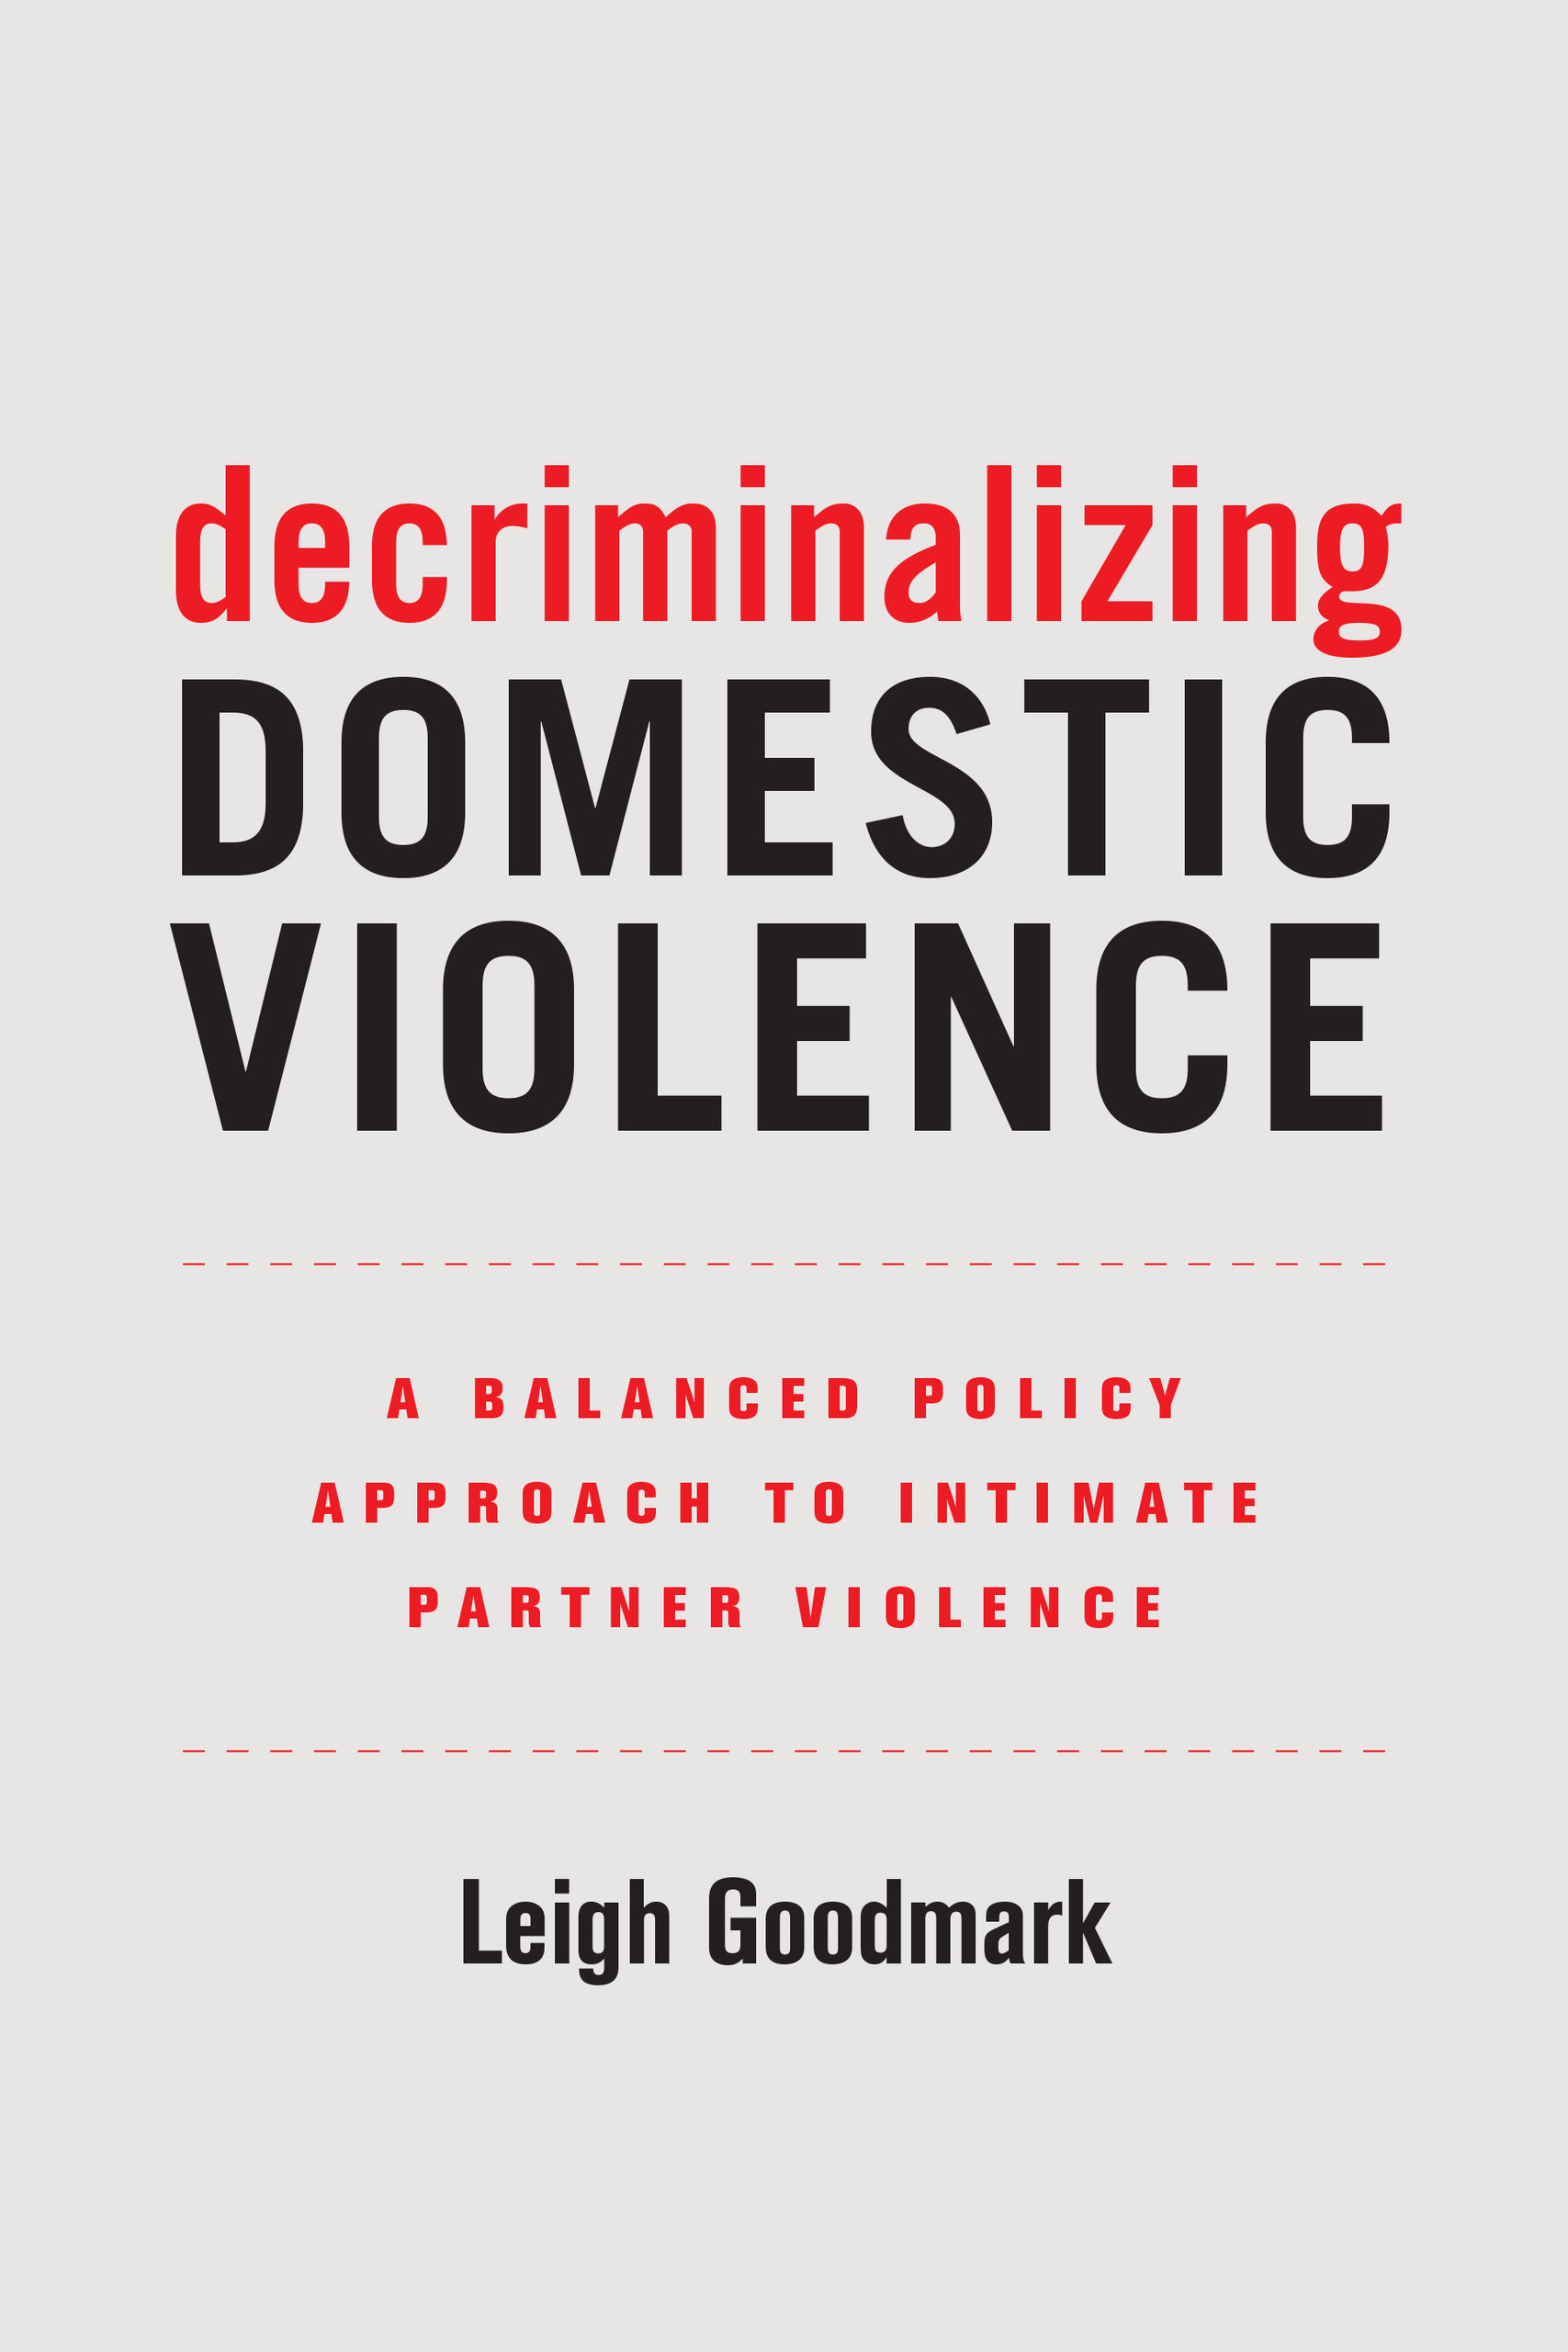 Decriminalizing Domestic Violence by Leigh Goodmark